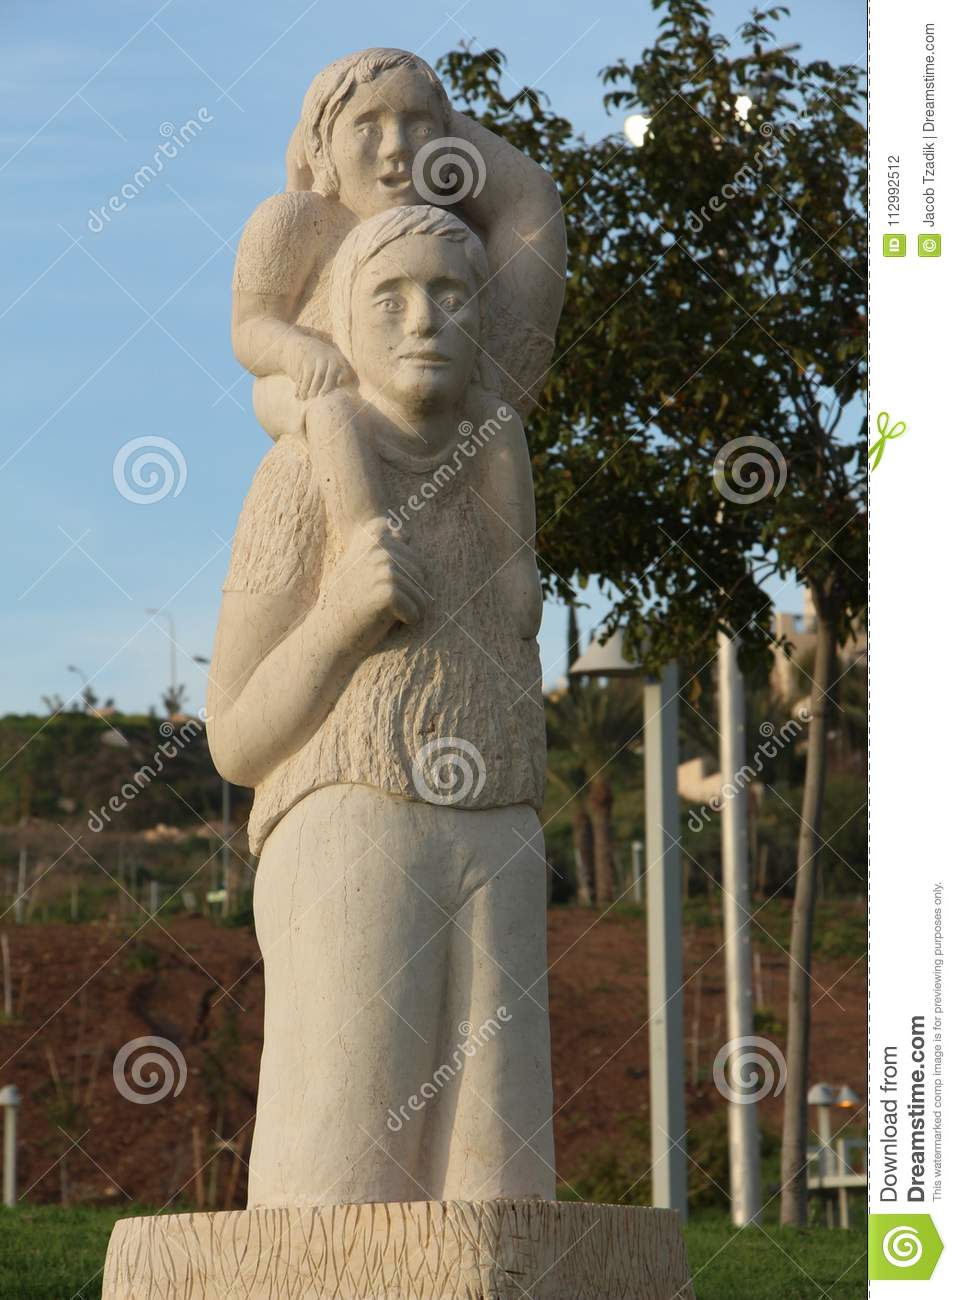 Mother and son statue